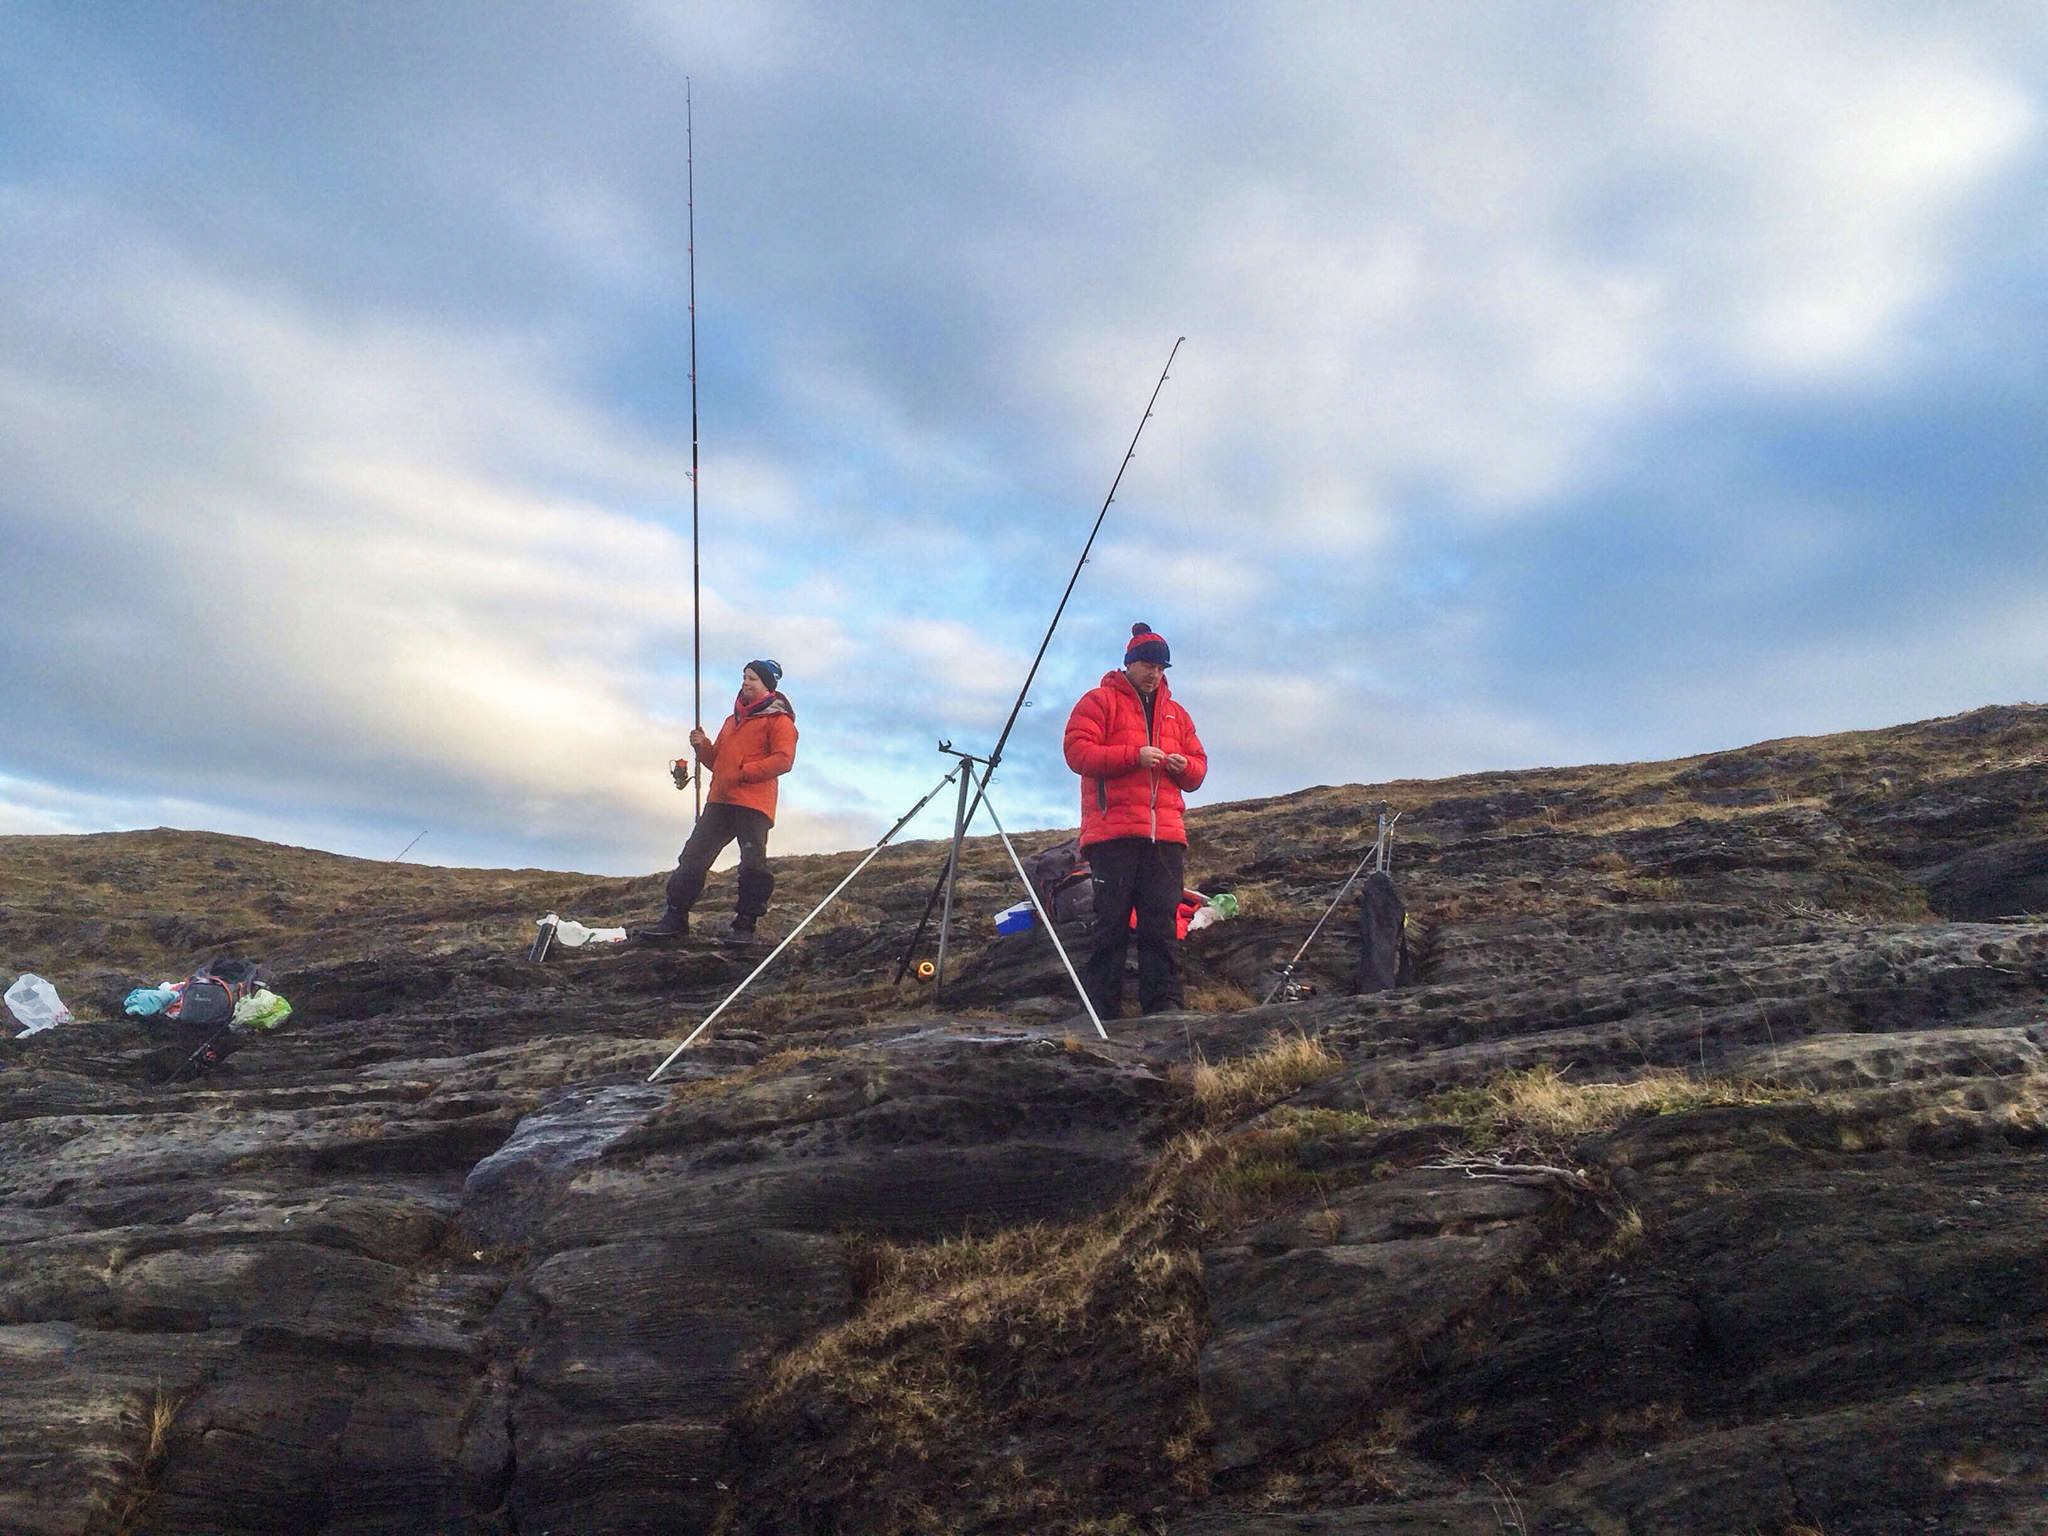 Shorefishing - Vega is an excellent place for shorefishing. You can catch cod, saithe/pollock, haddock, halibut and flounder. Ask us and we'll tell you the best places to fish from.